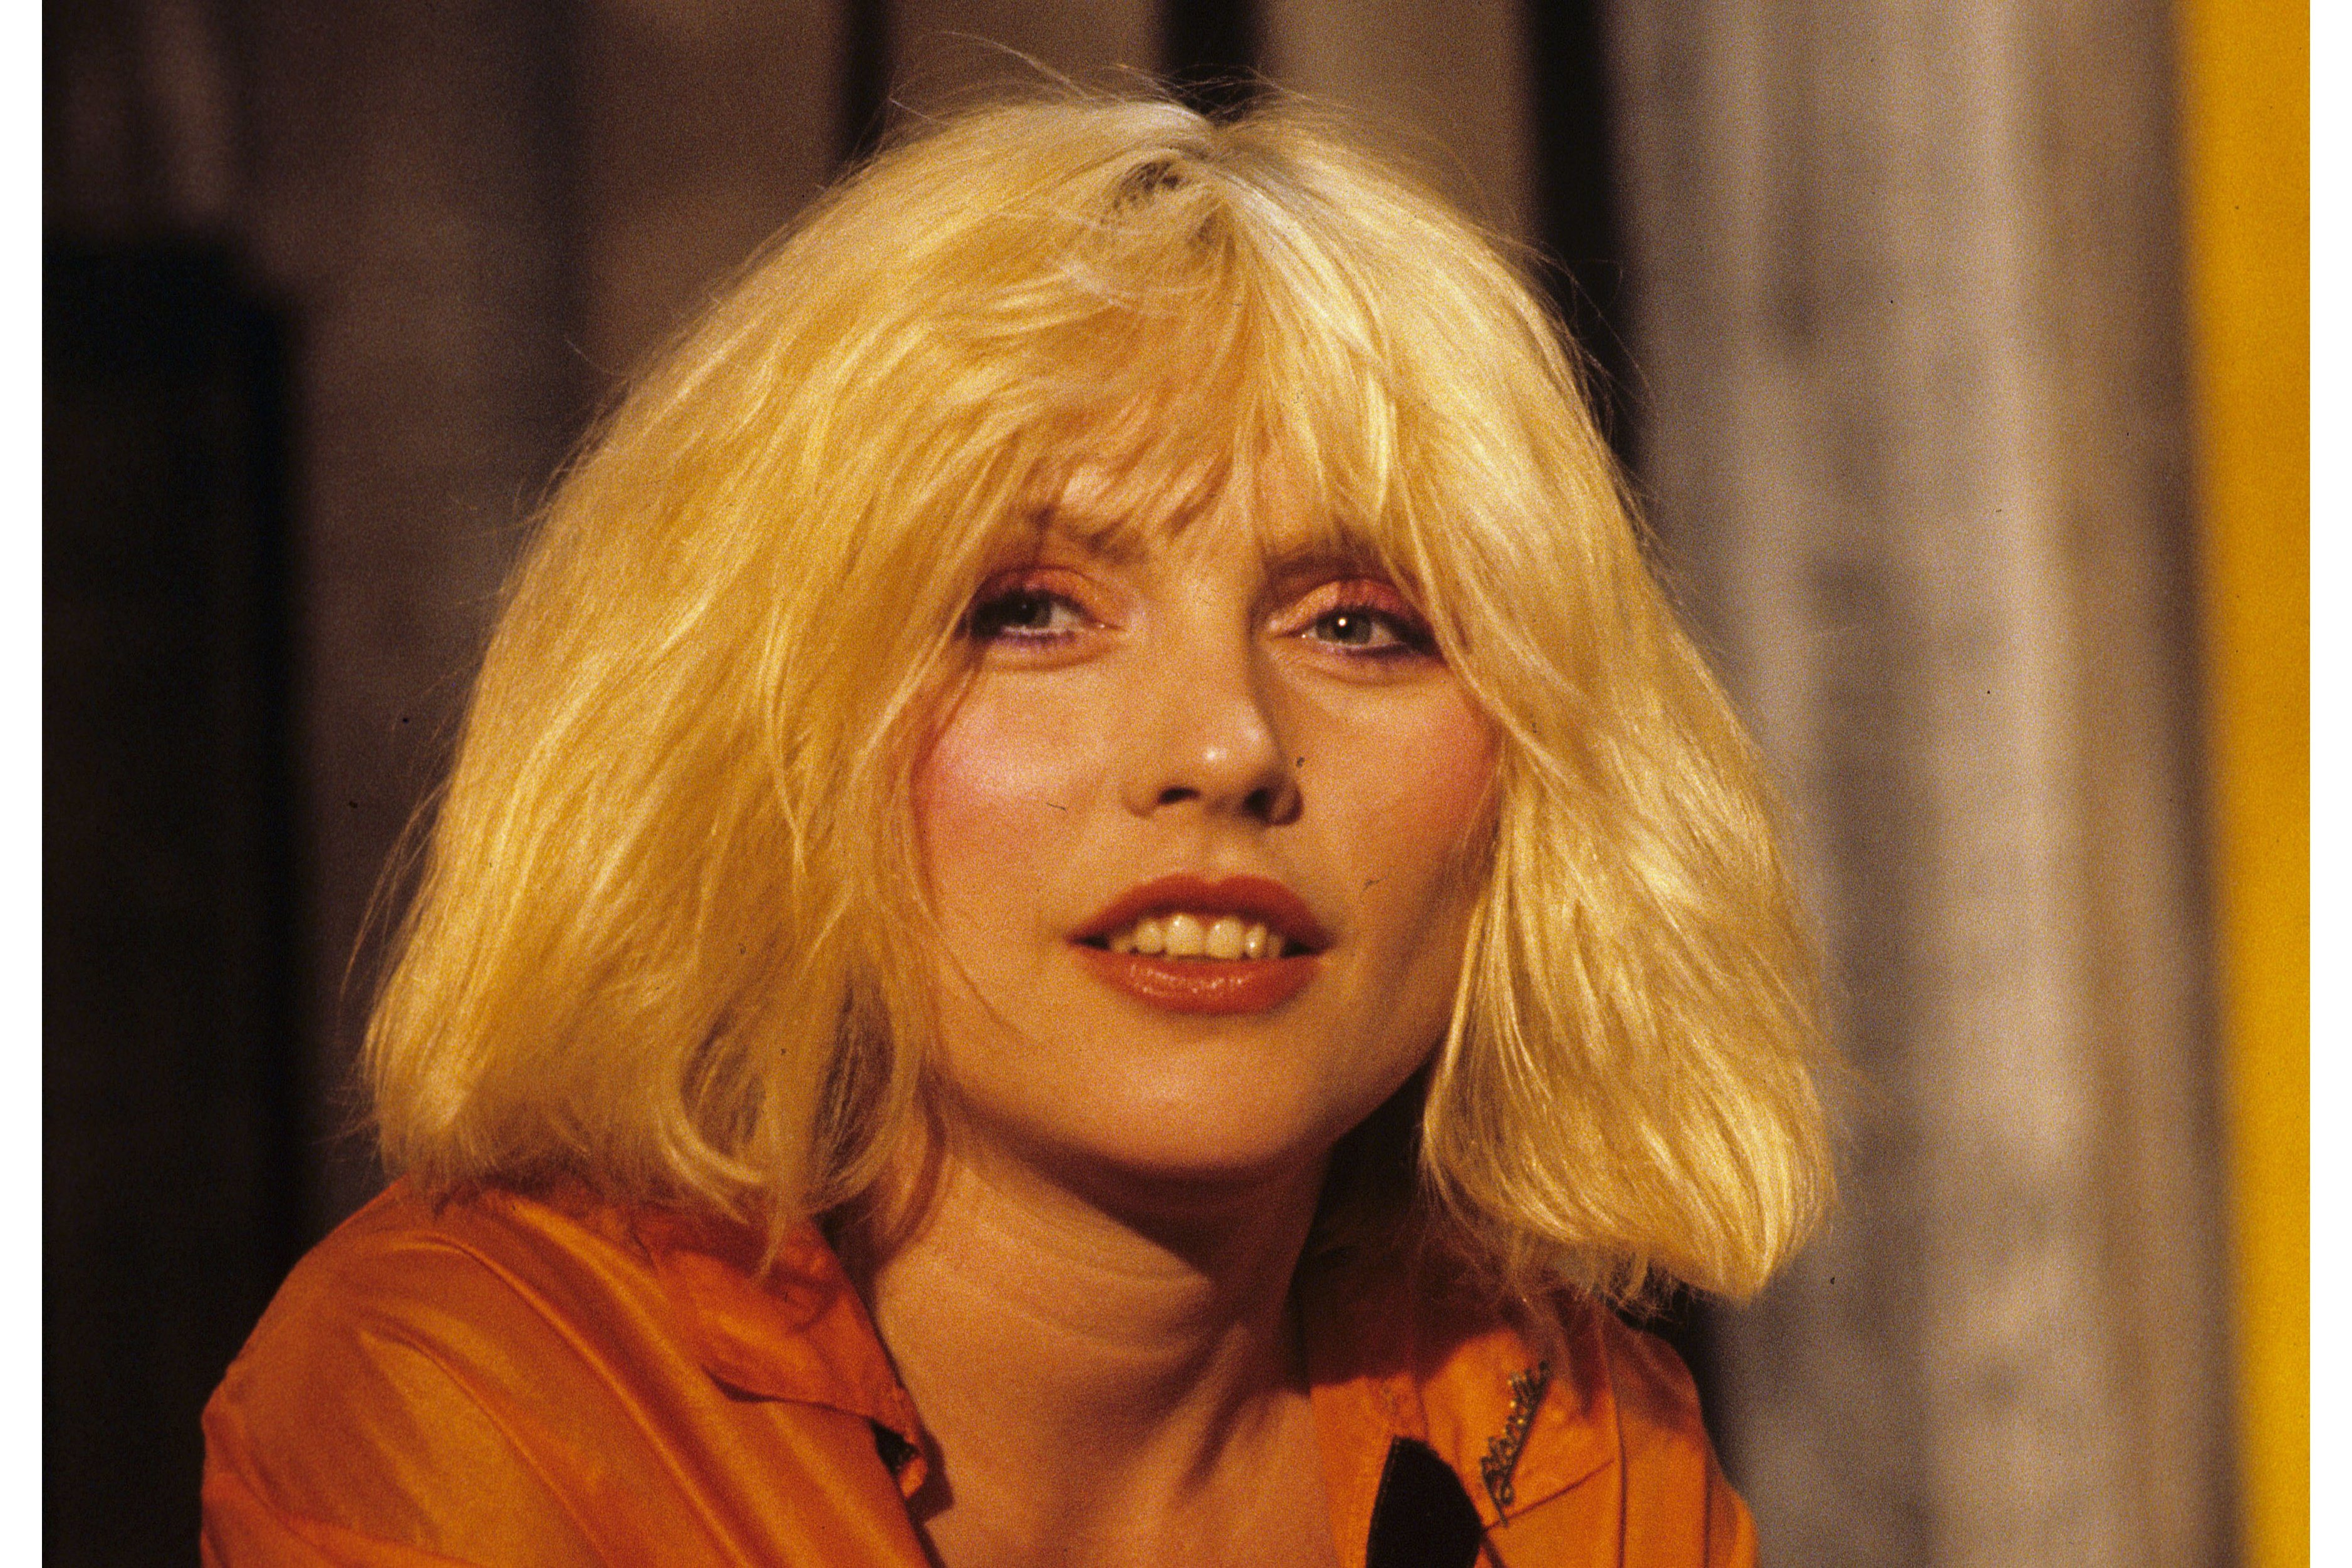 Mandatory Credit: Photo by David Dagley/Shutterstock (85780a) Debbie Harry on 'The Muppet Show' TV show VARIOUS - 1980